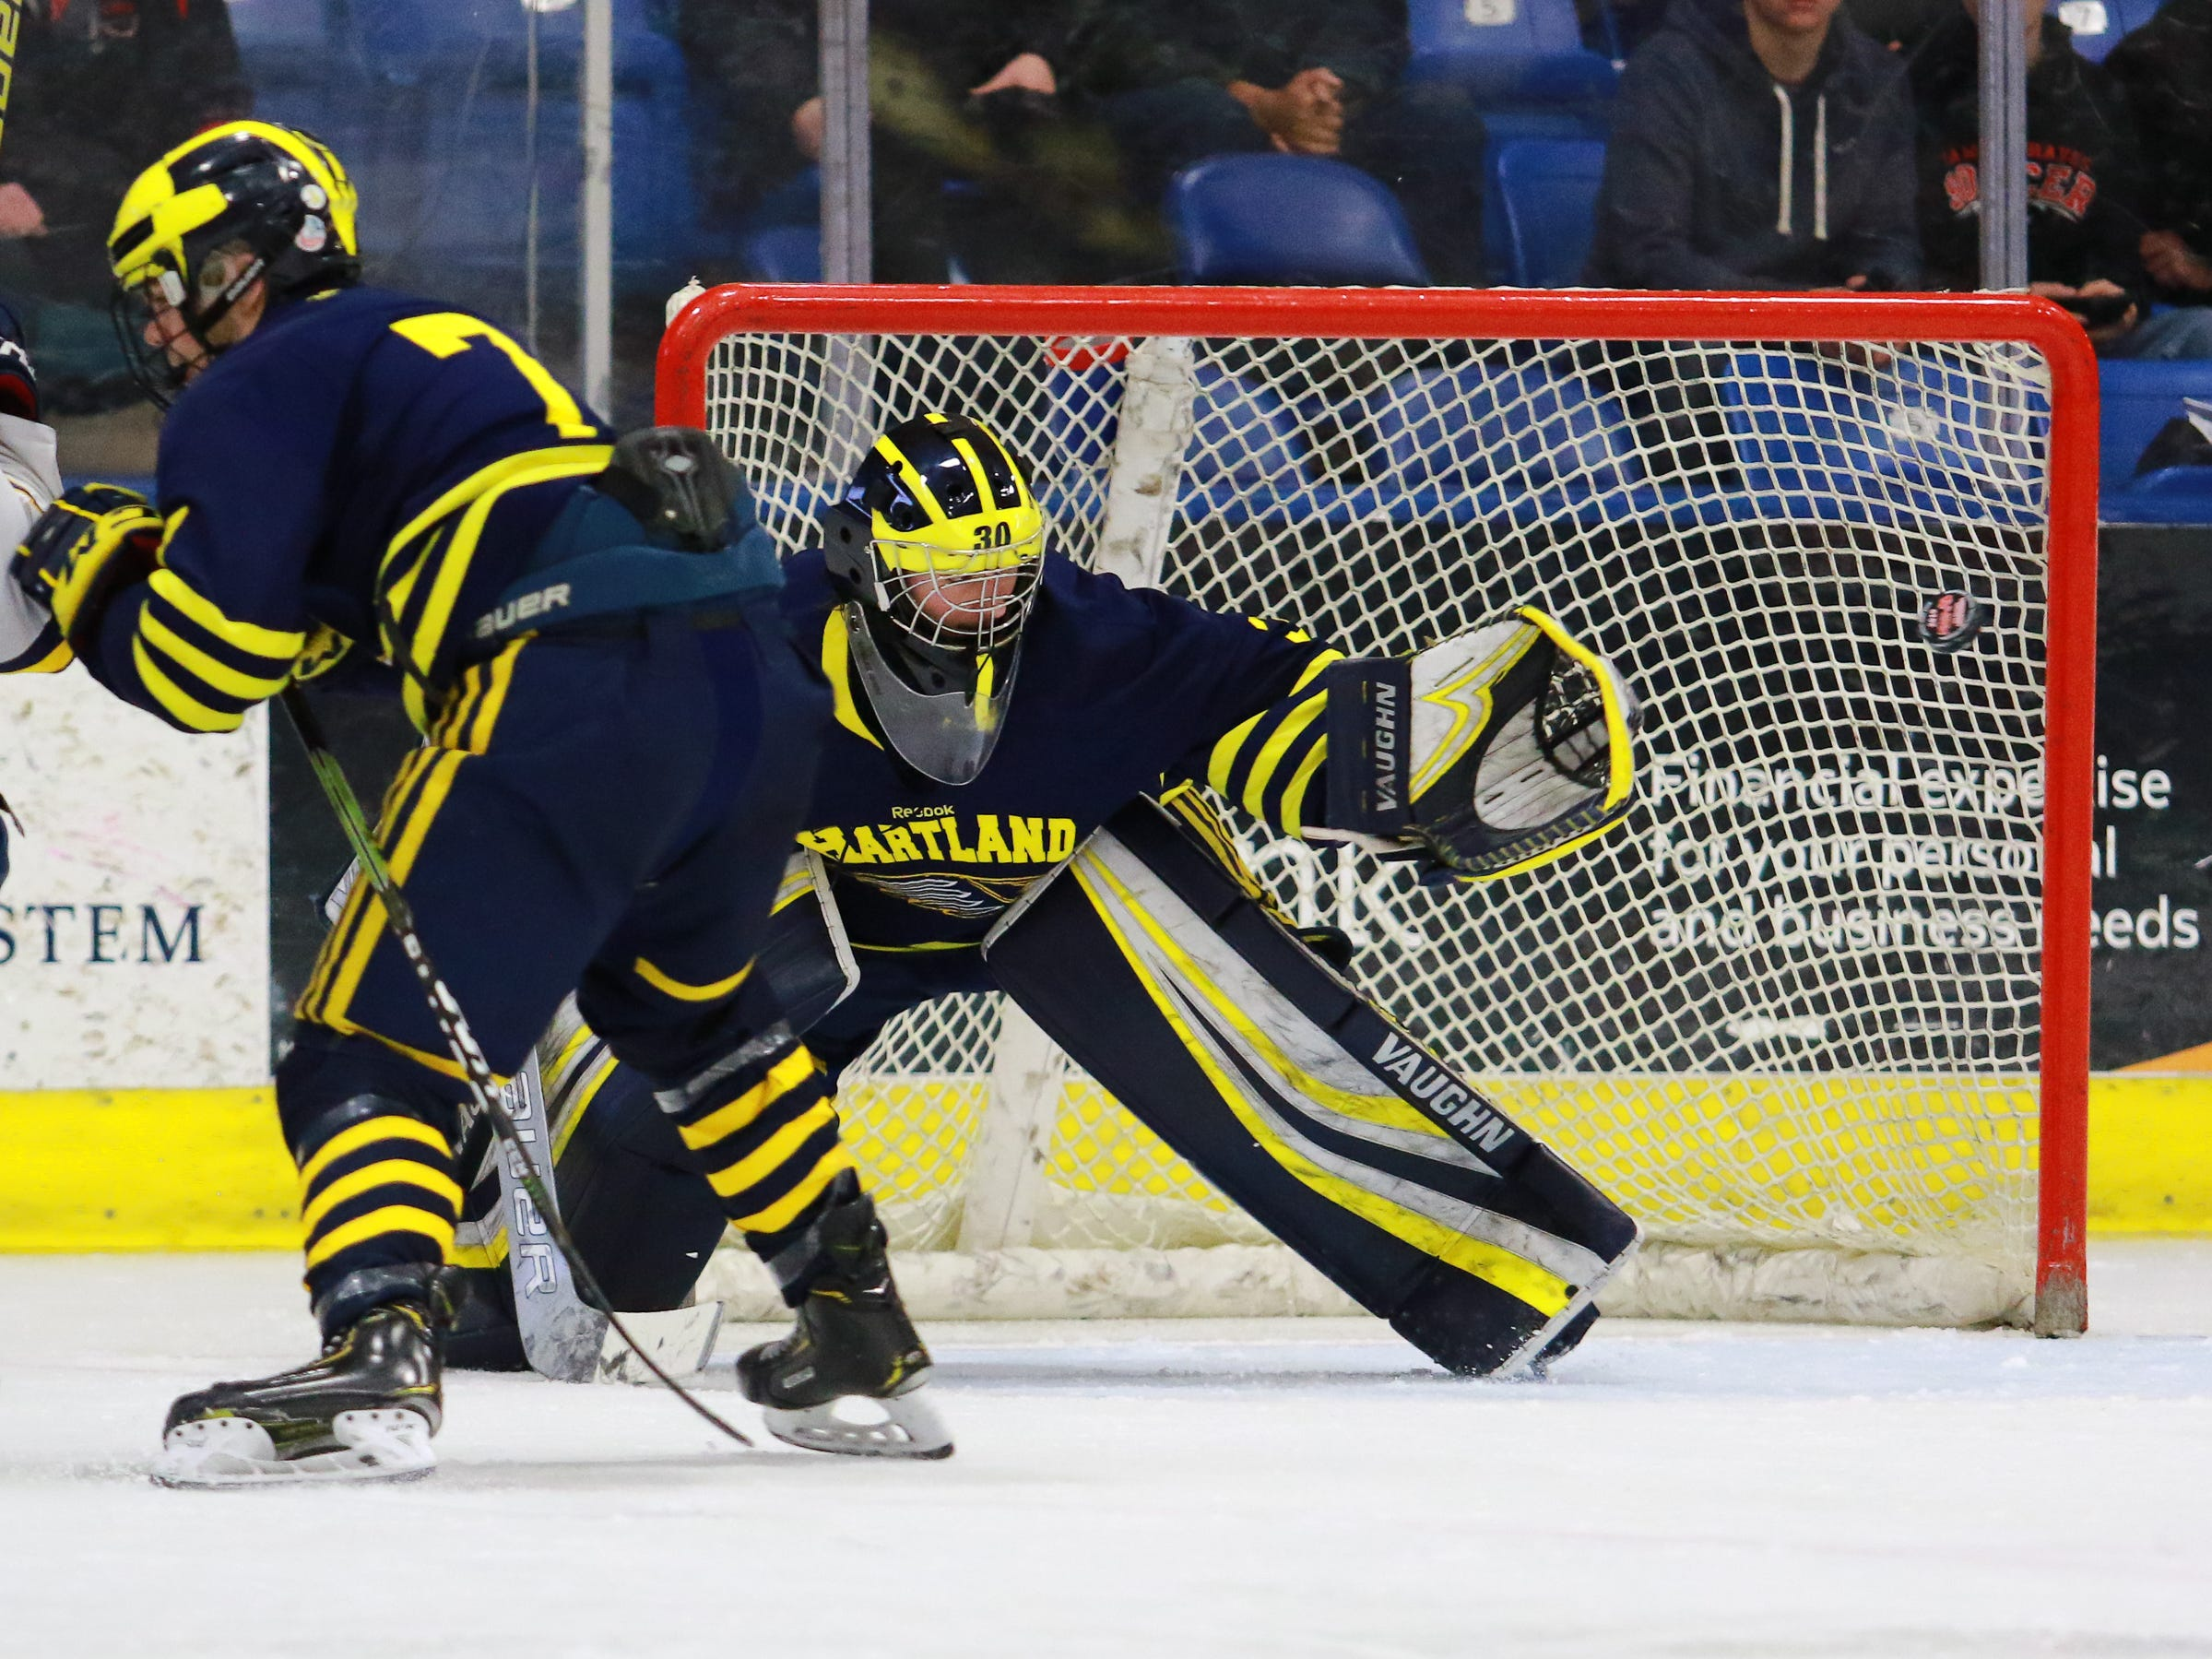 The puck flies wide of Hartland goalie Brett Tome in a 4-0 victory over Trenton in the state Division 2 championship hockey game on Saturday, March 9, 2019 at USA Hockey Arena.